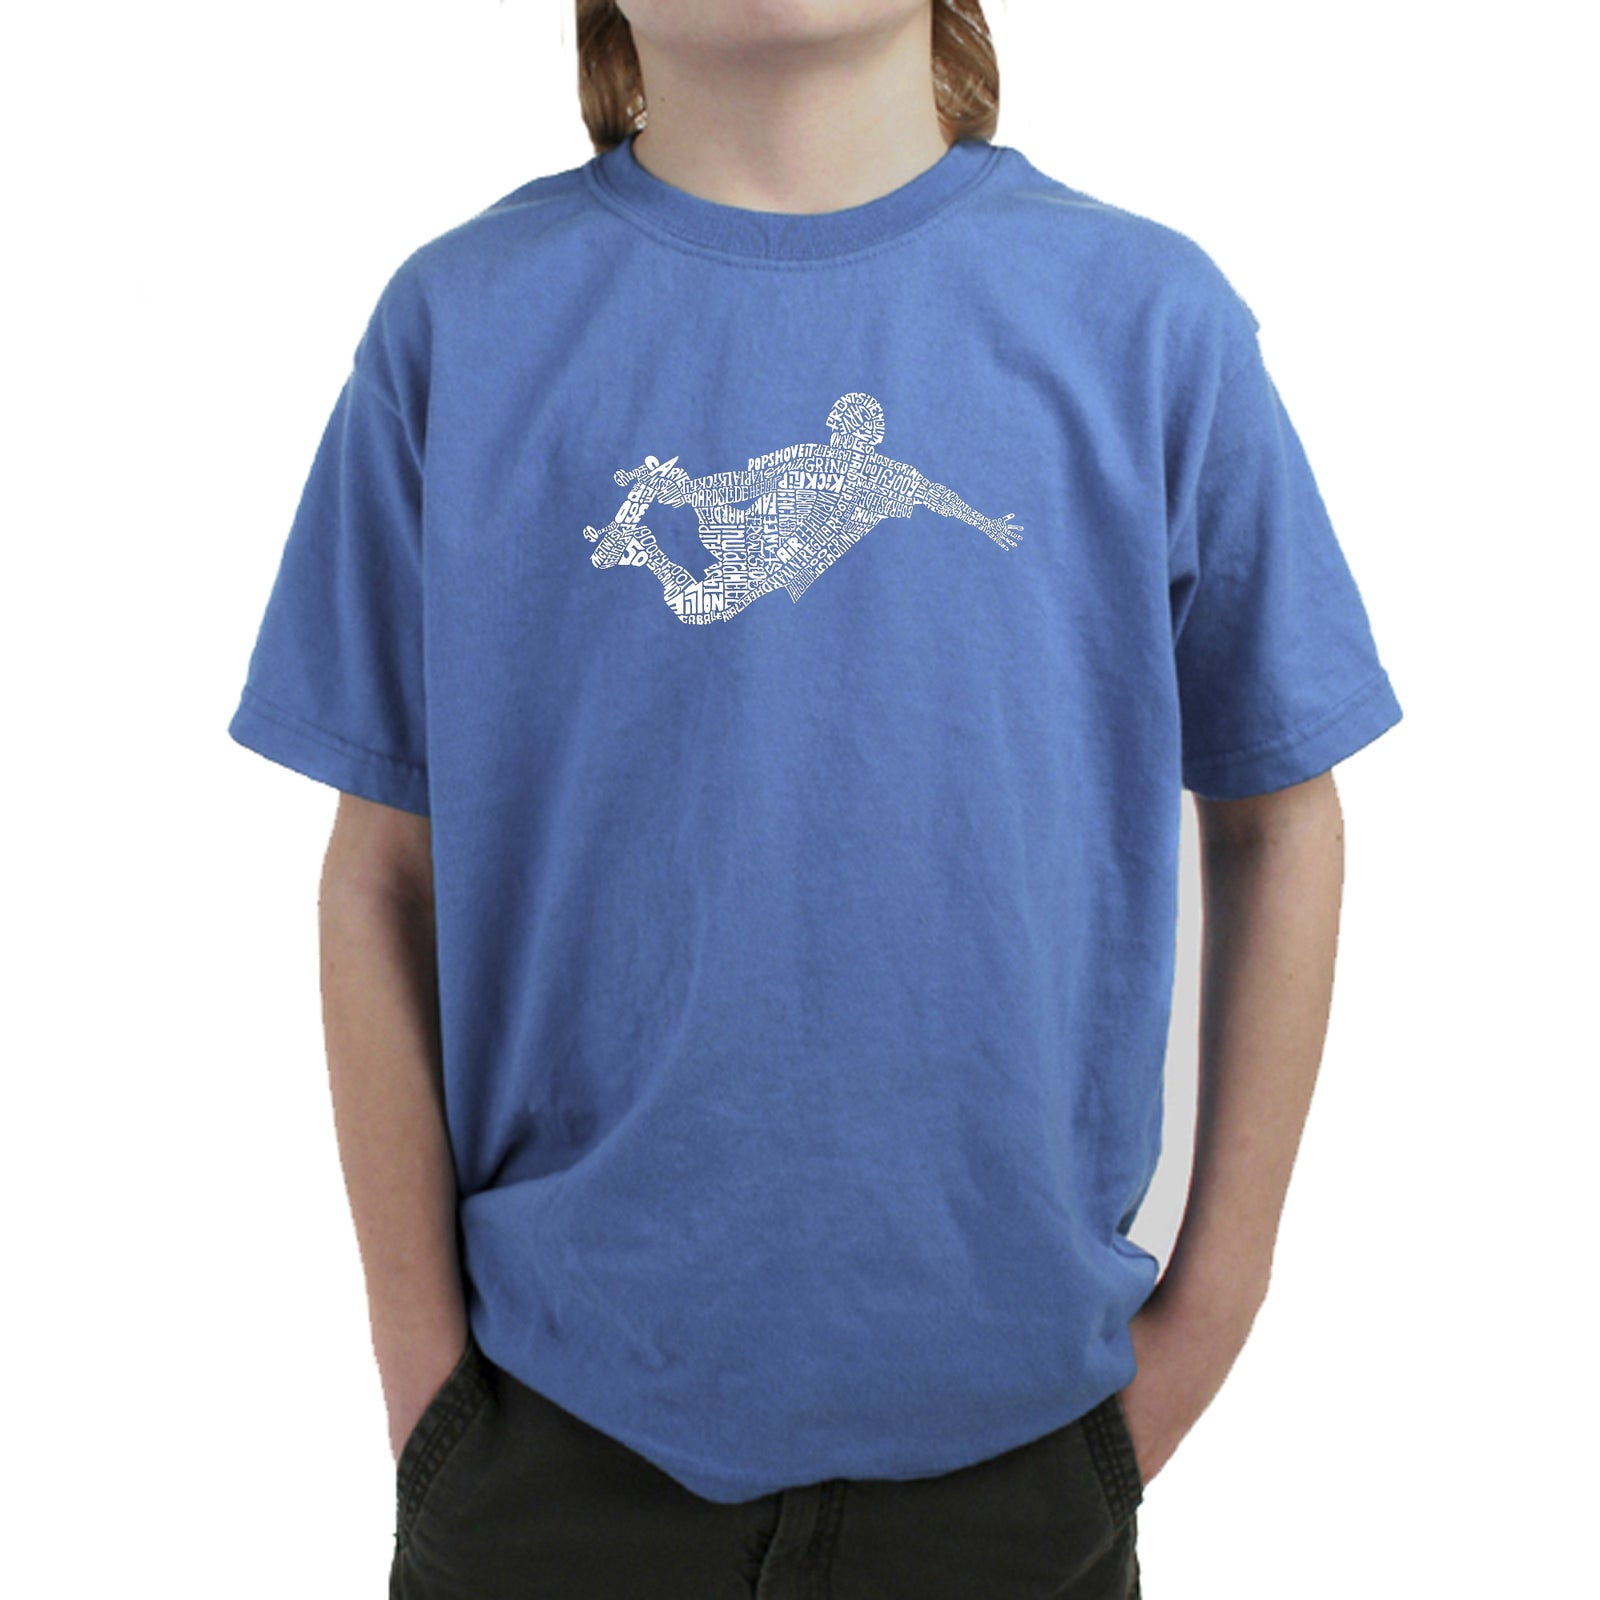 Boy's T-shirt - POPULAR SKATING MOVES & TRICKS